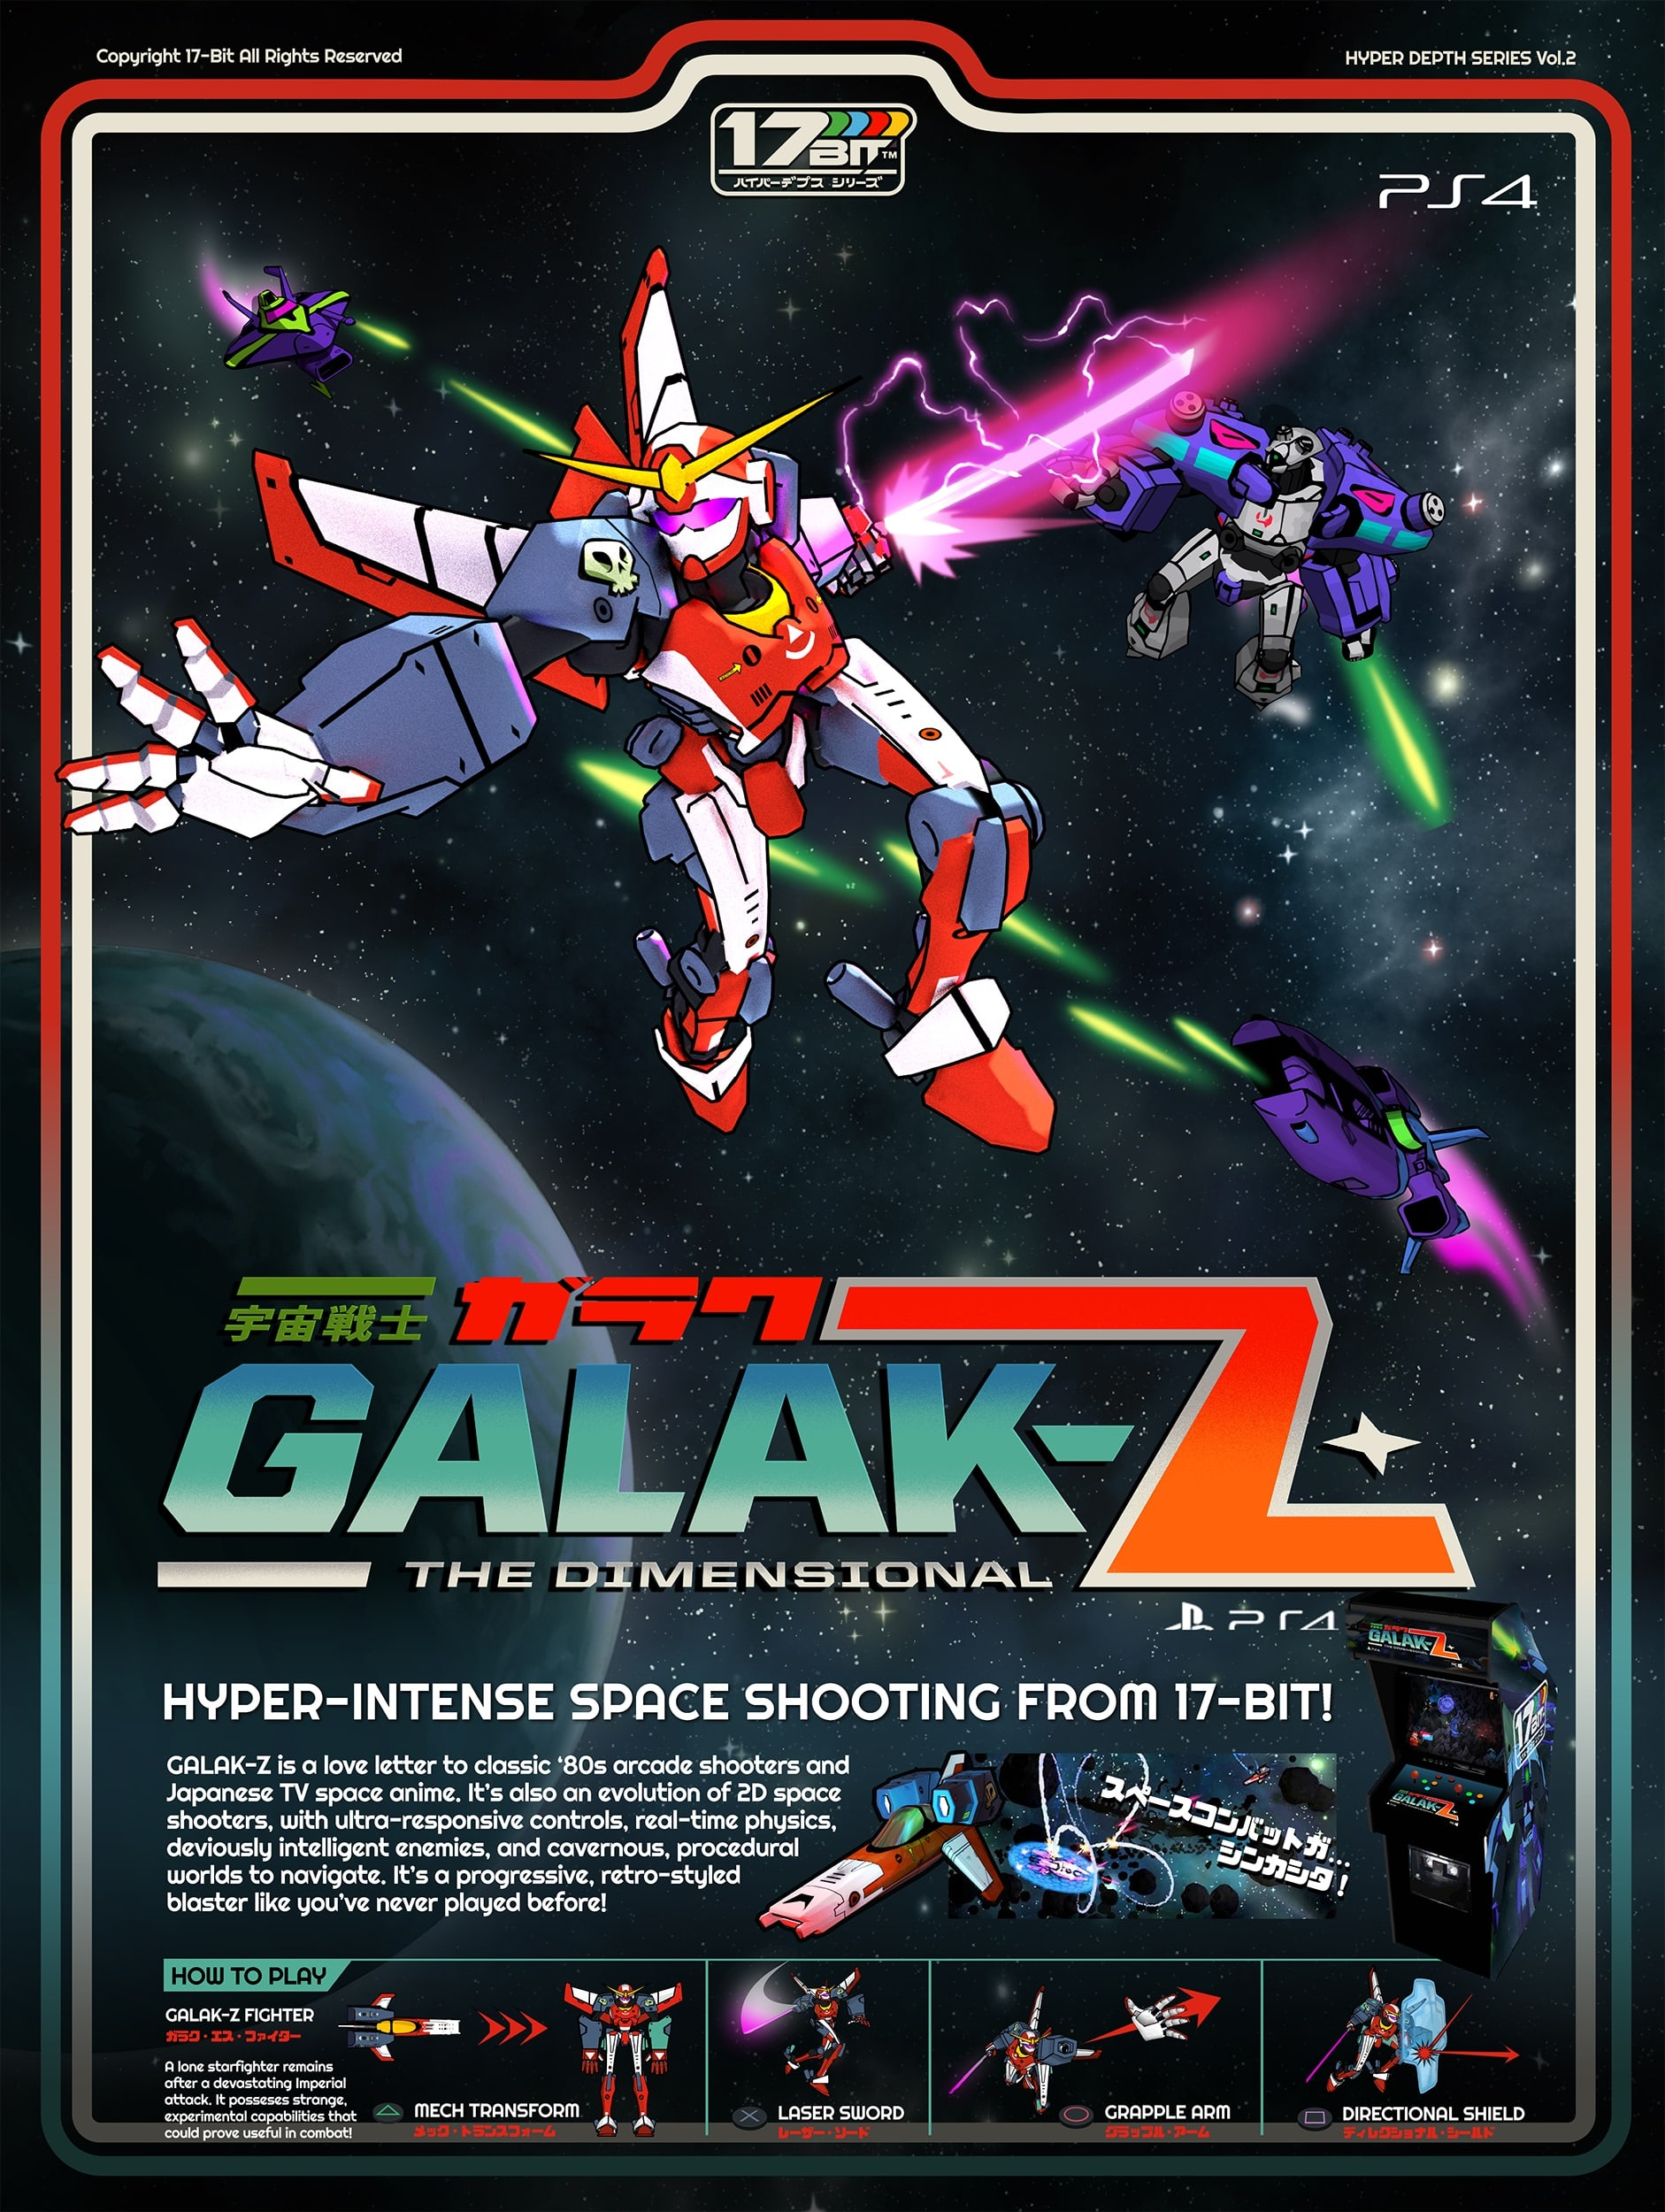 Galak-Z: The Dimensional For mobile